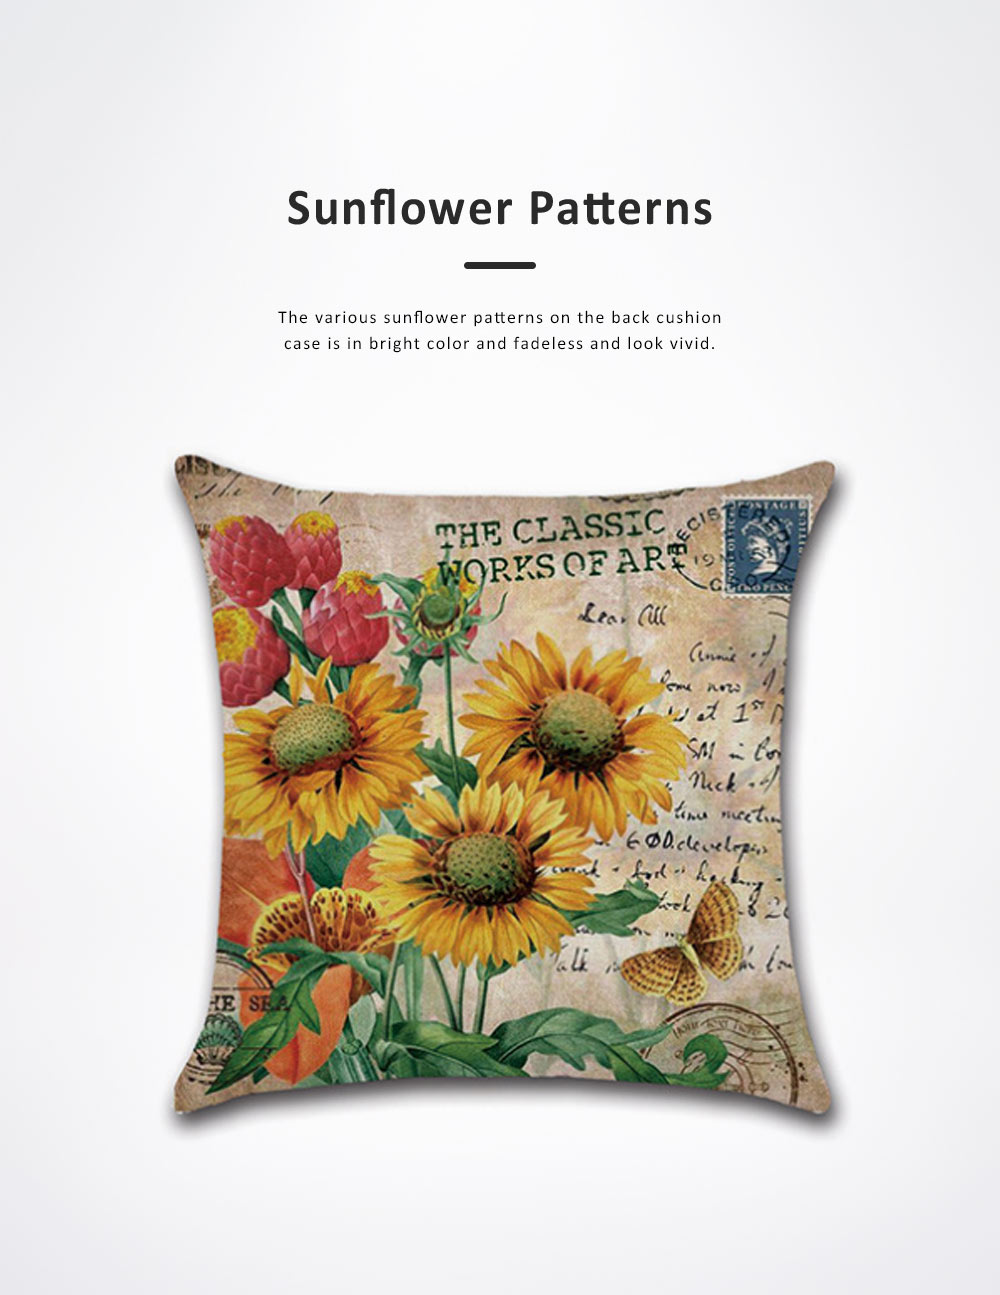 Sunflower Series Hand-painted Pillow Case, Back Leaning Cushion Cover for Home, Office, Car Used Pillow Linen Cover 4